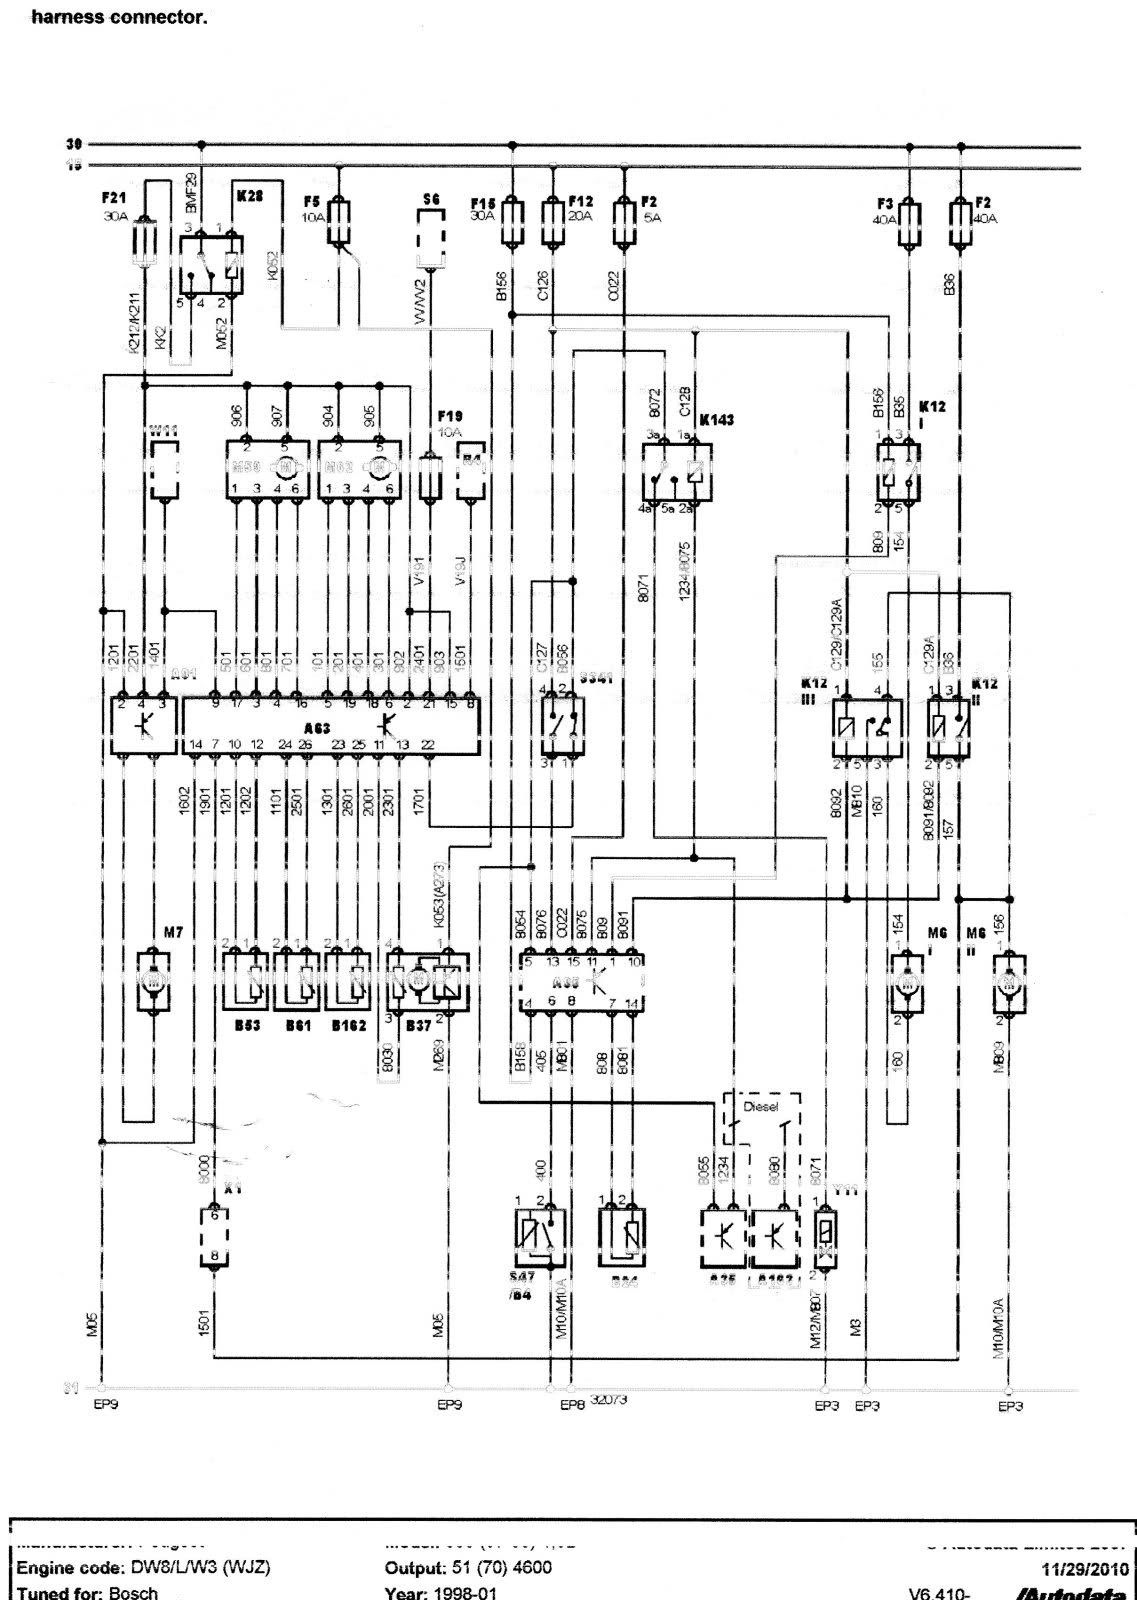 wiring bar diagram light 11 8220 wiring diagram